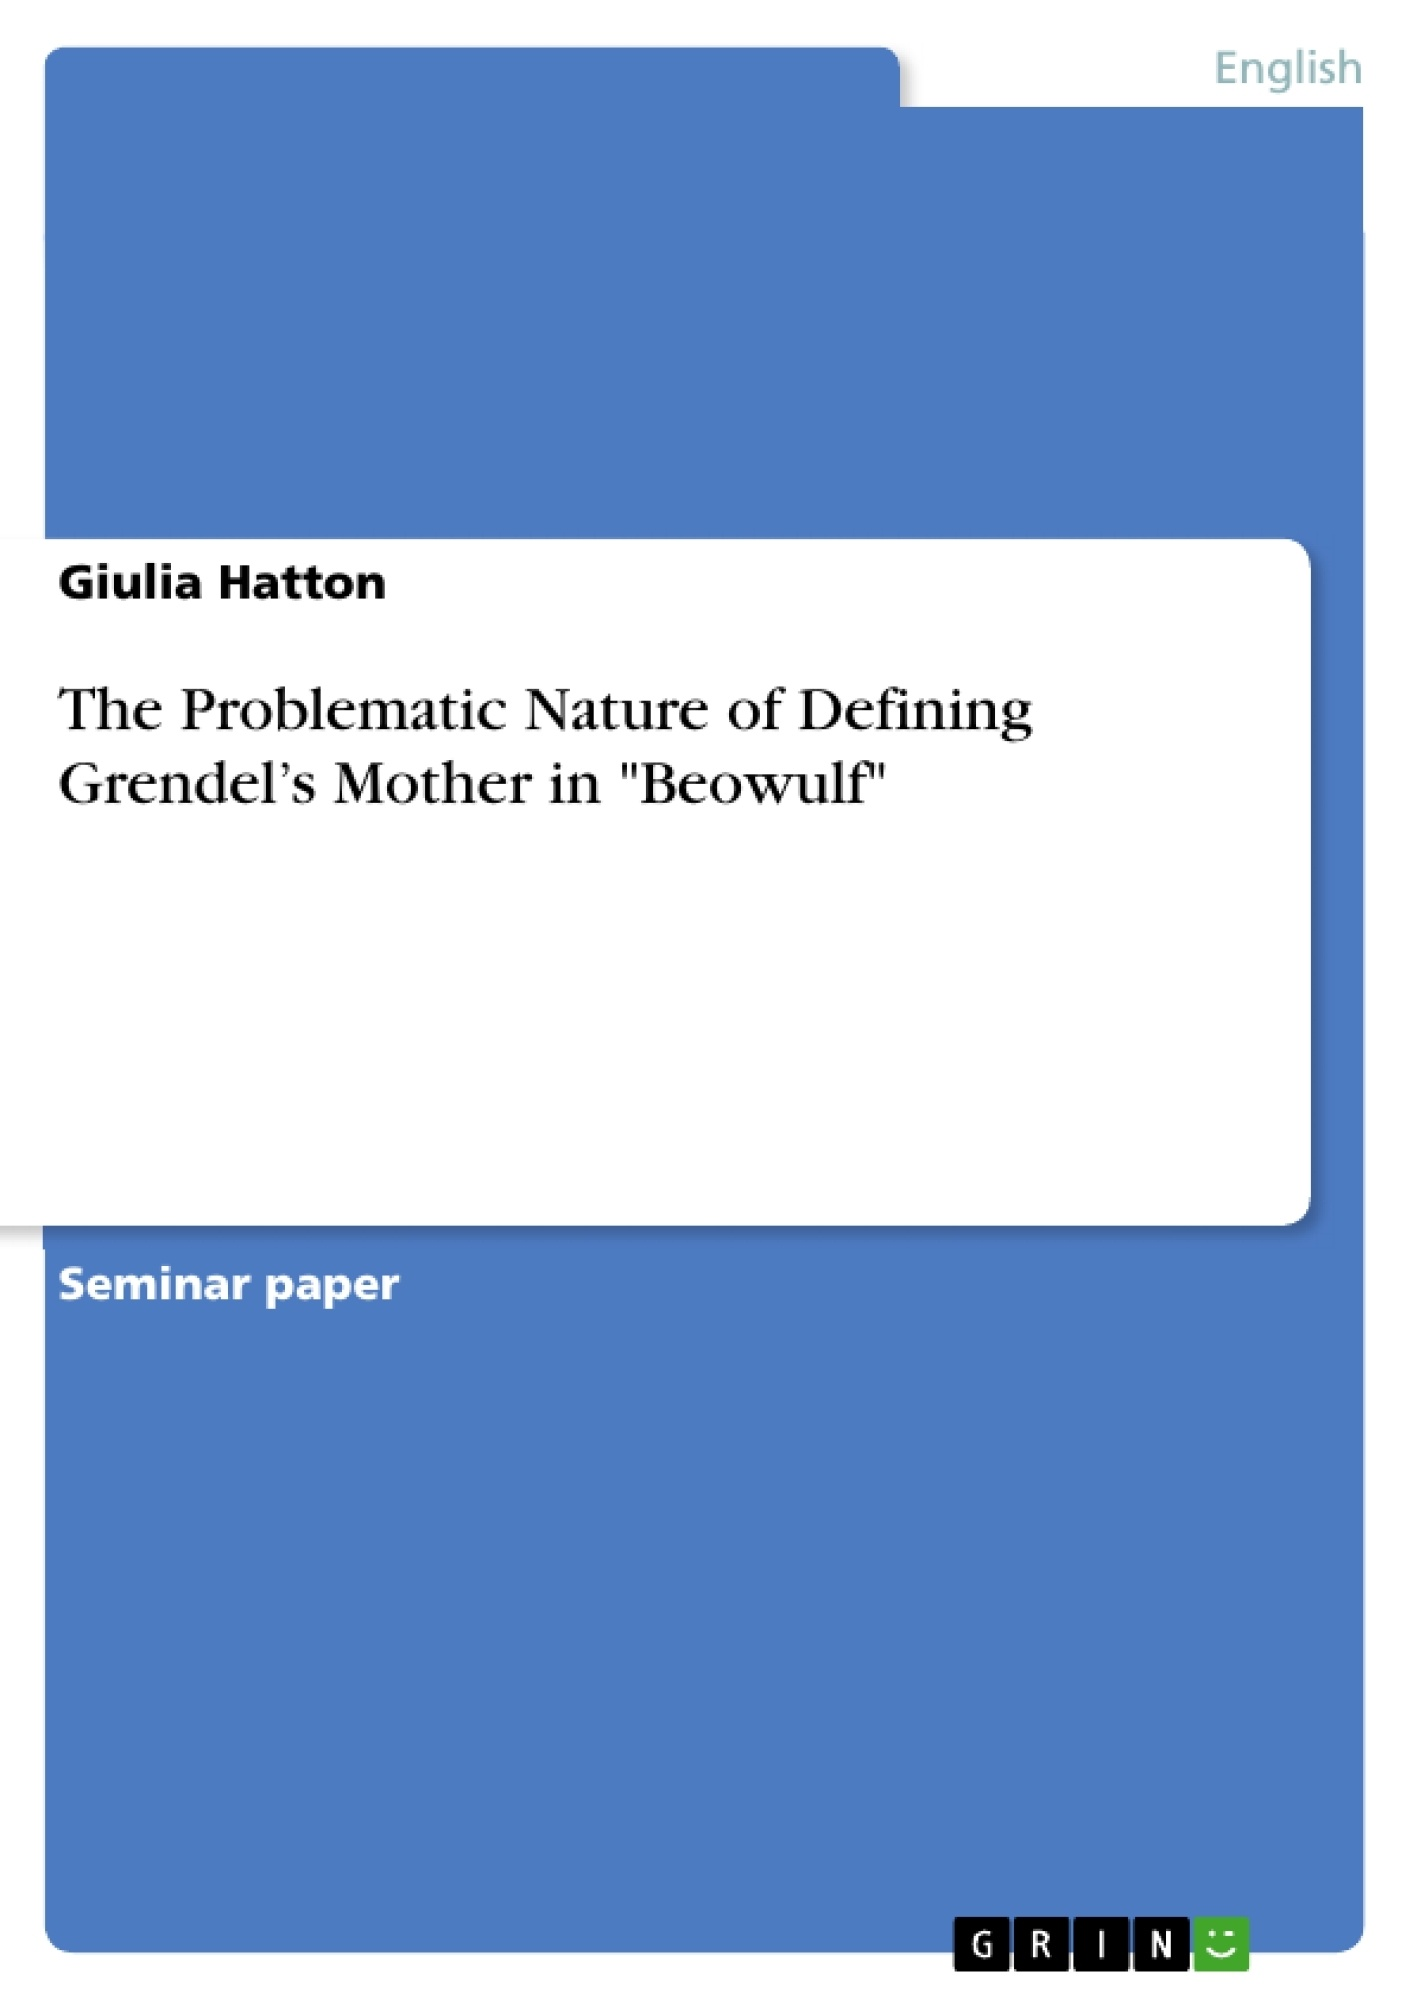 """Title: The Problematic Nature of Defining Grendel's Mother in """"Beowulf"""""""